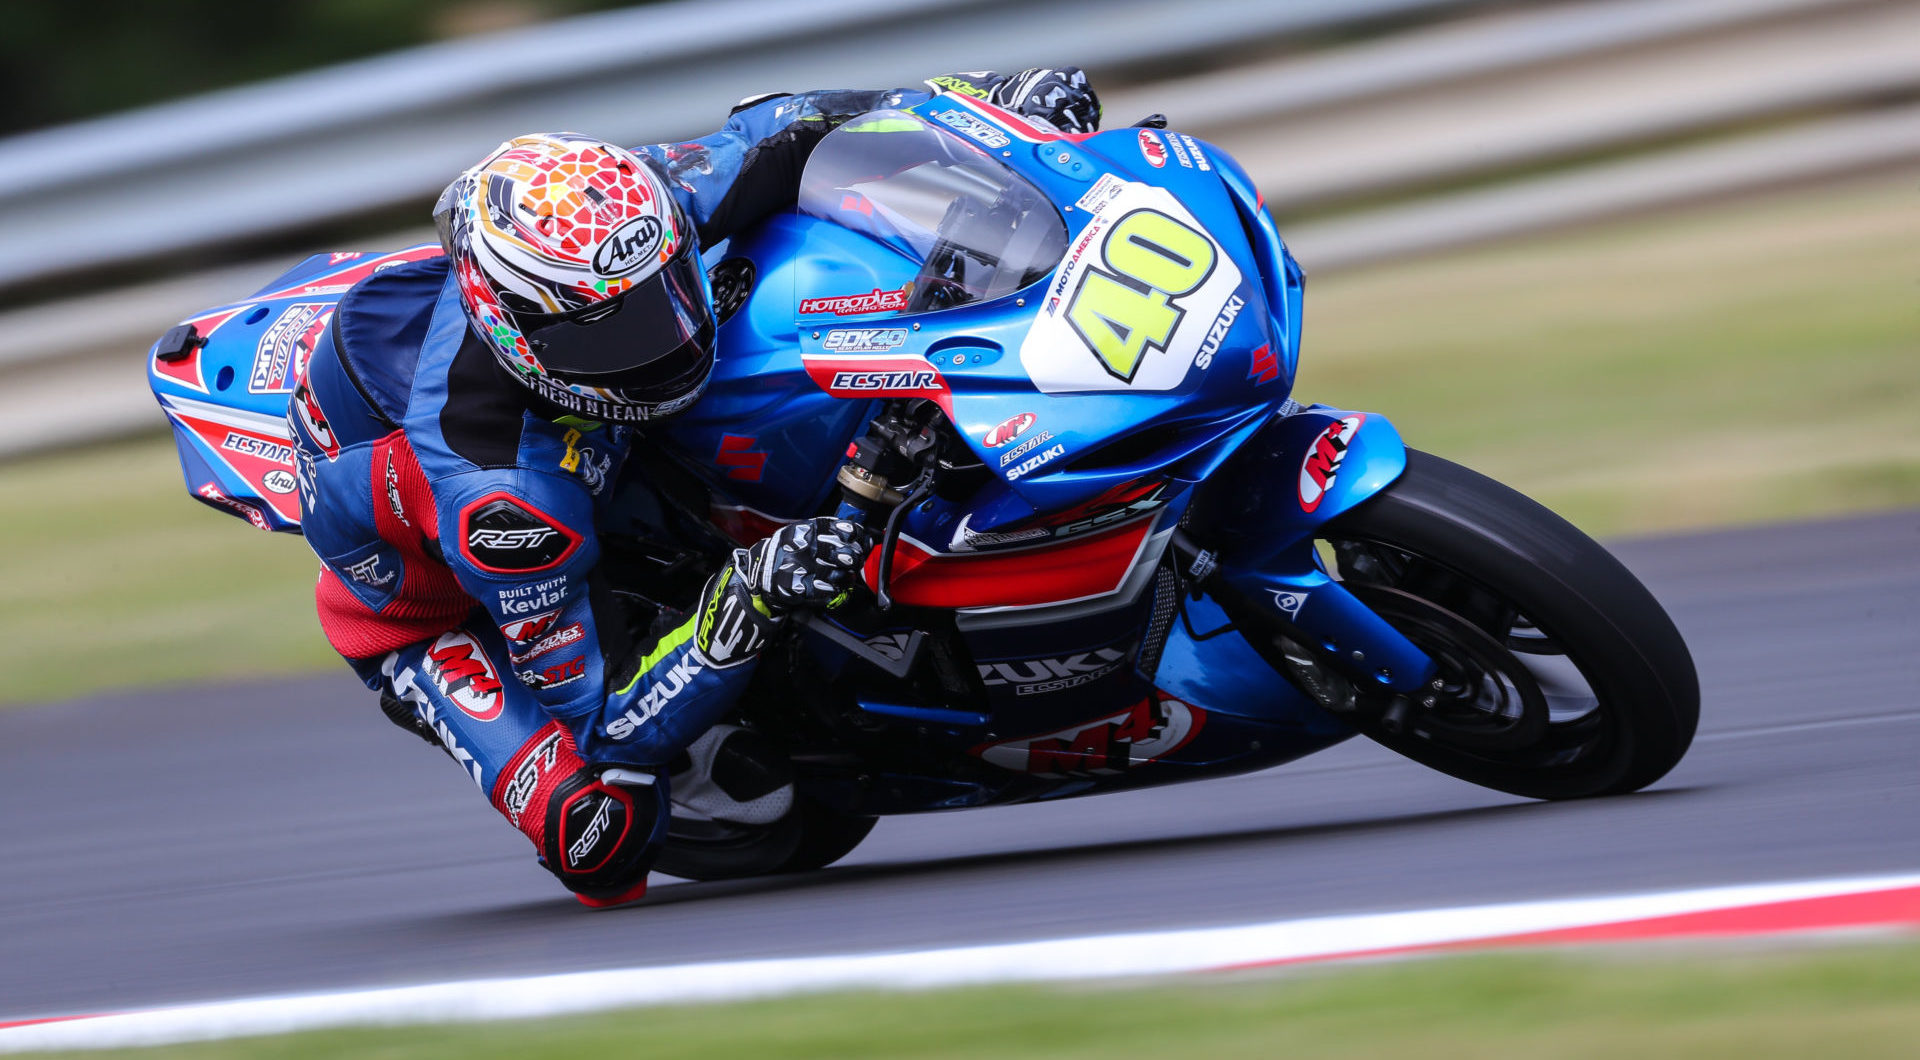 Sean Dylan Kelly (40) set a new MotoAmerica Supersport lap record at Ridge Motorsports Park. Photo by Brian J. Nelson.